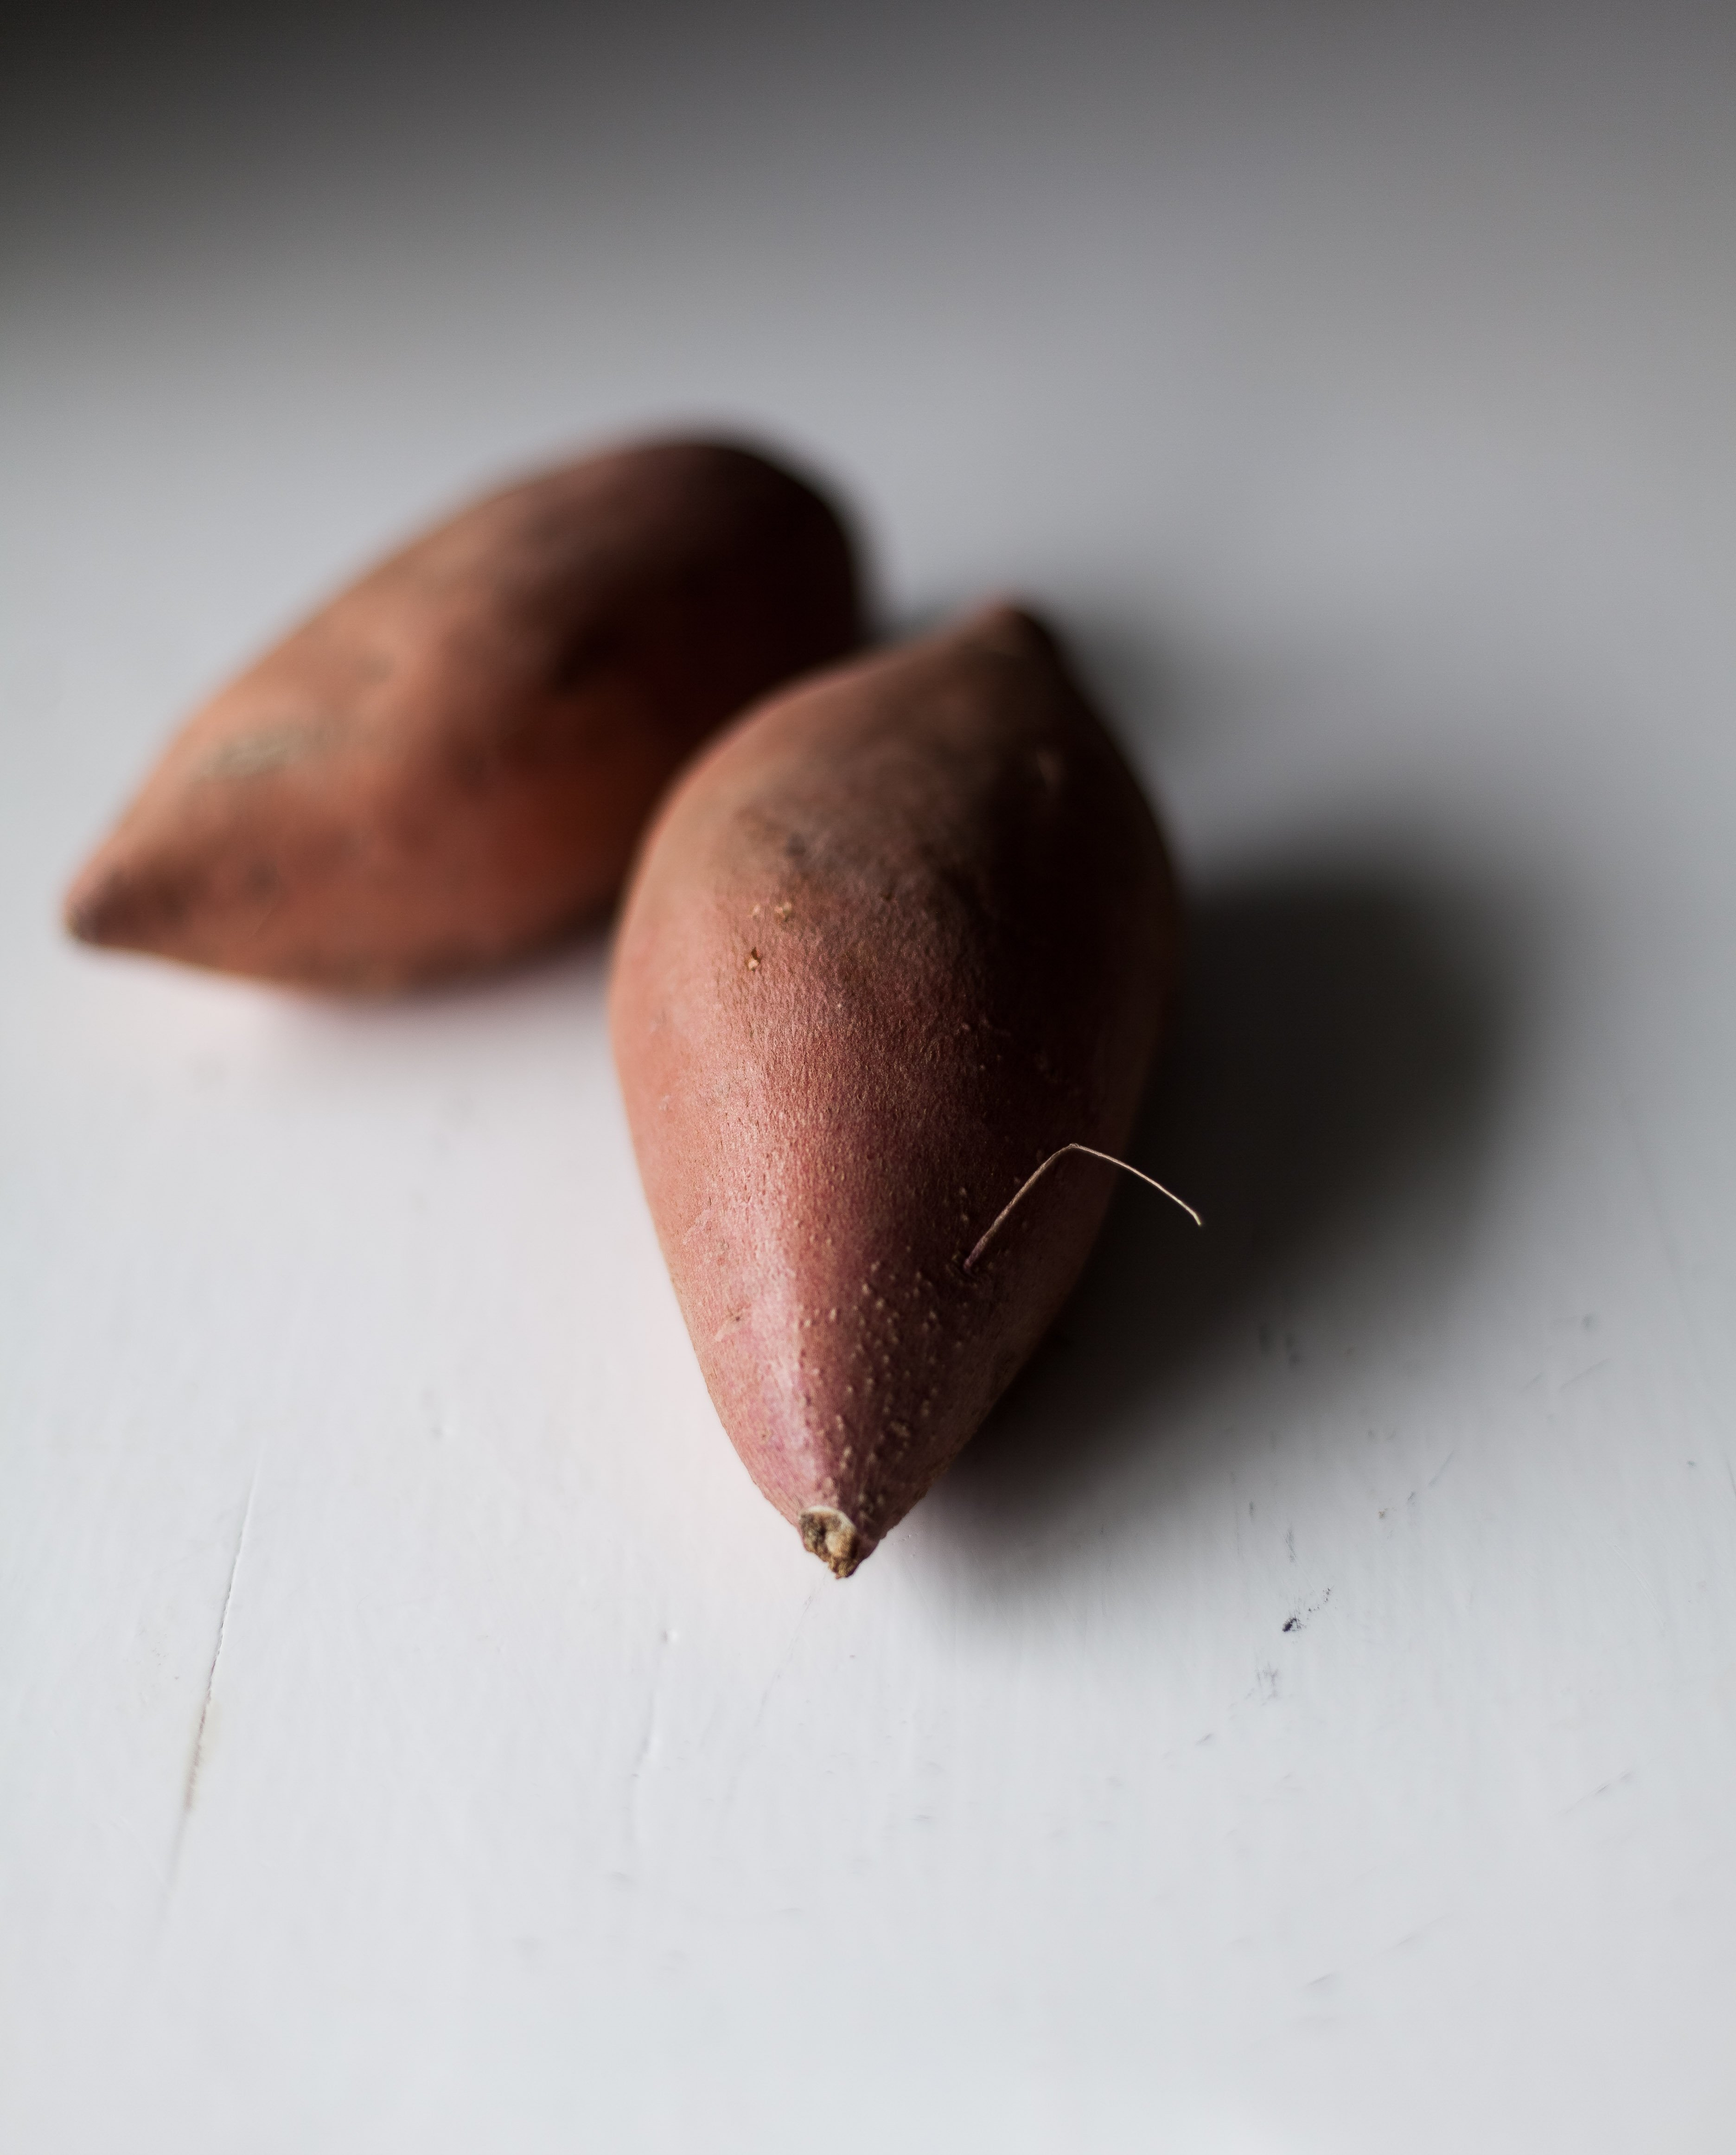 a closeup image of two sweet potatoes on a white surface.